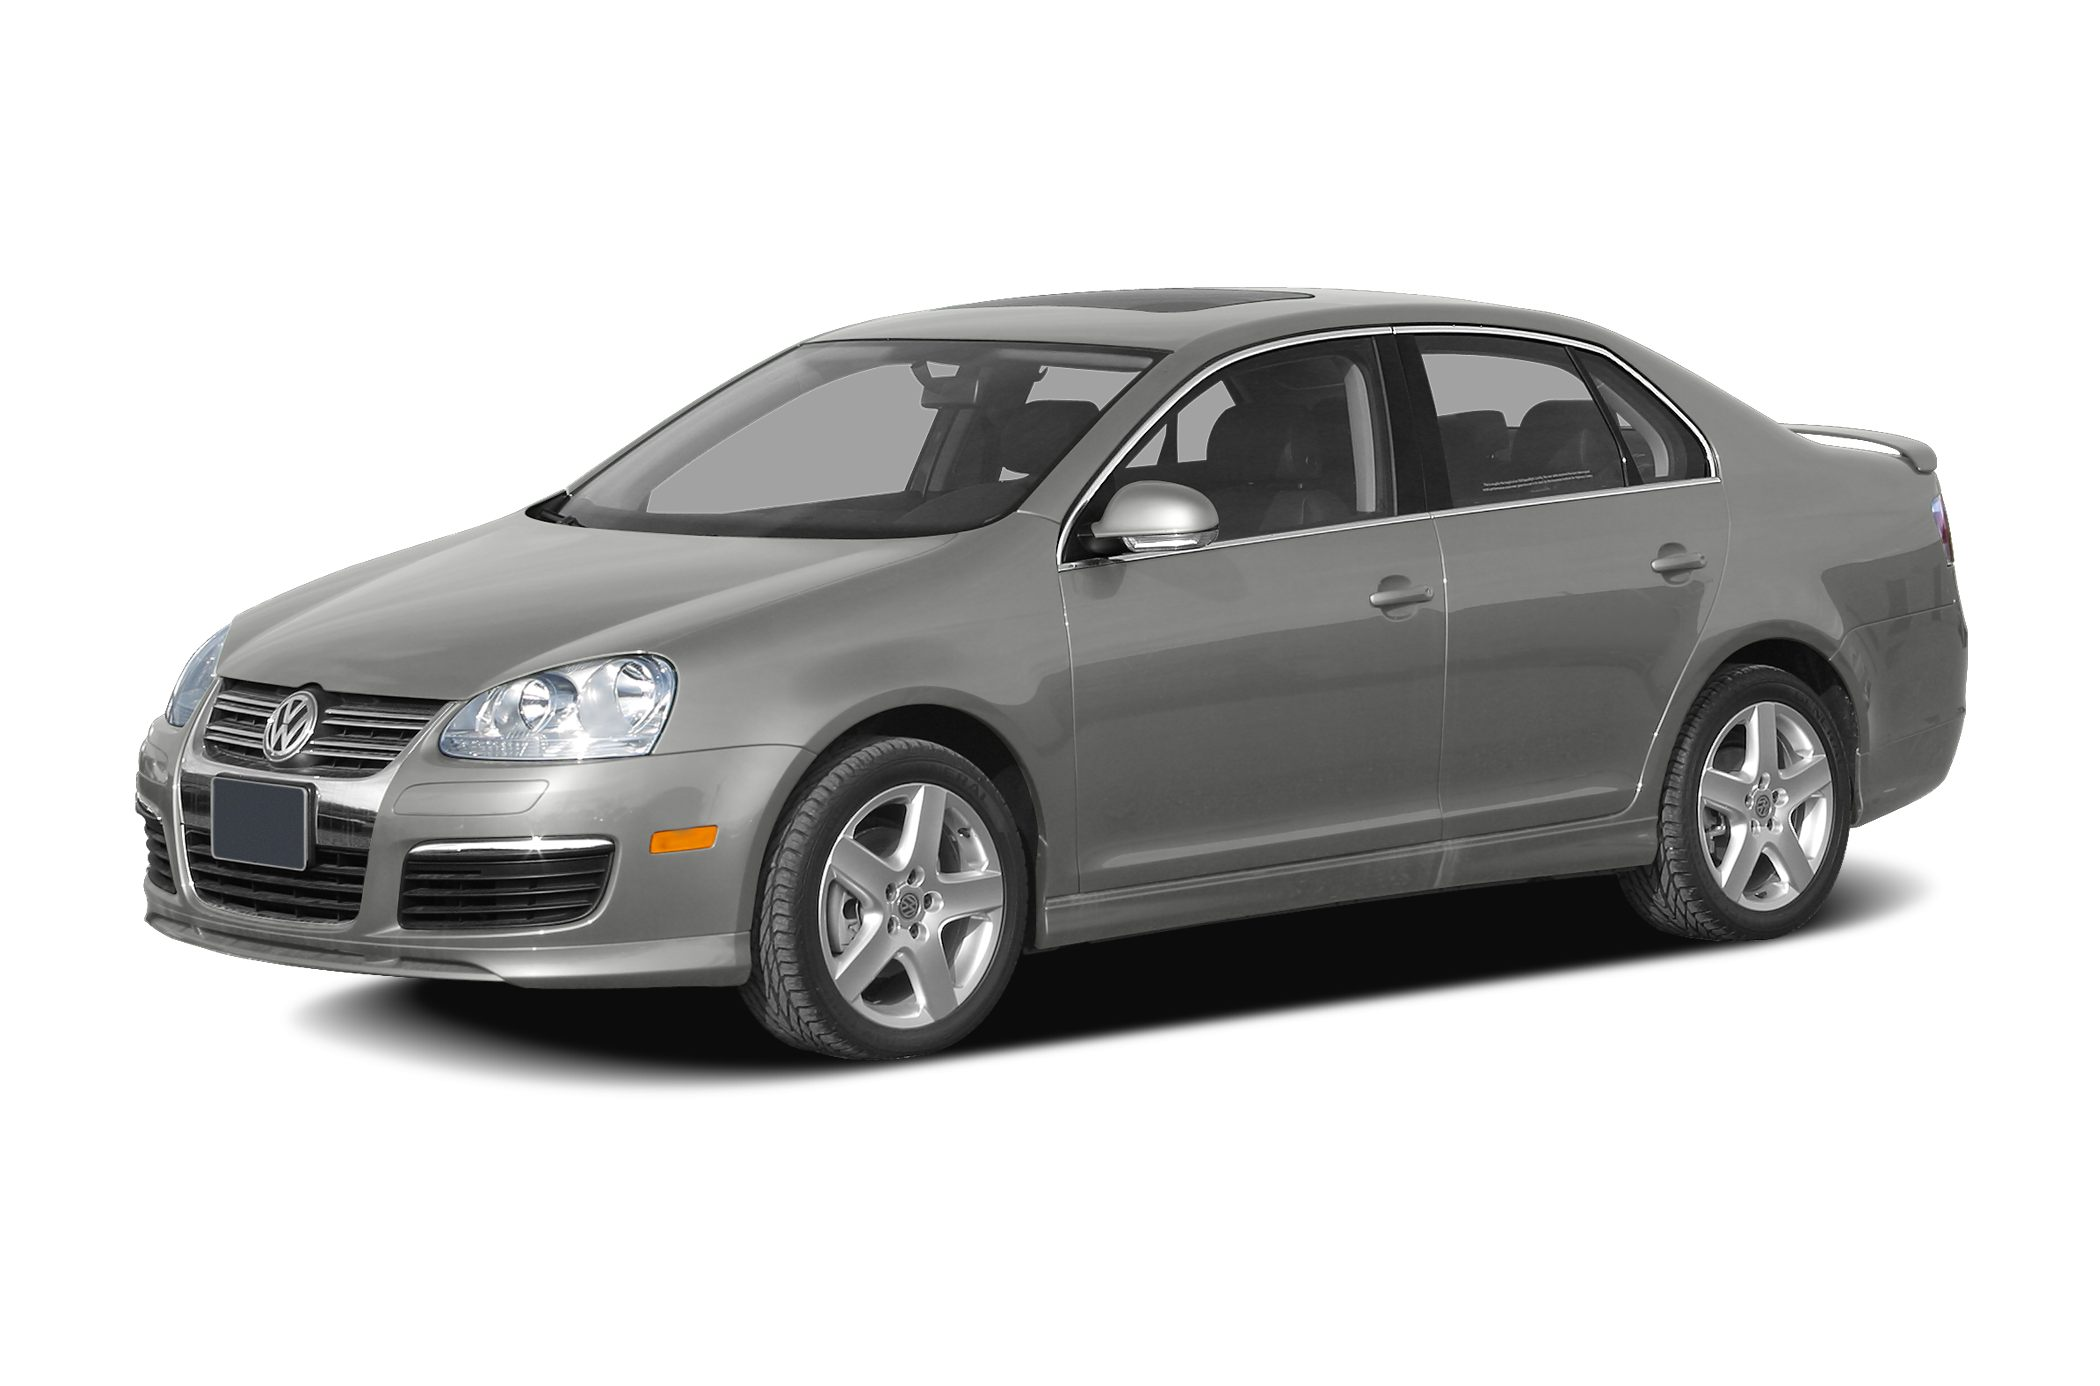 2008 Volkswagen Jetta SE Sedan for sale in Rock Hill for $7,999 with 114,756 miles